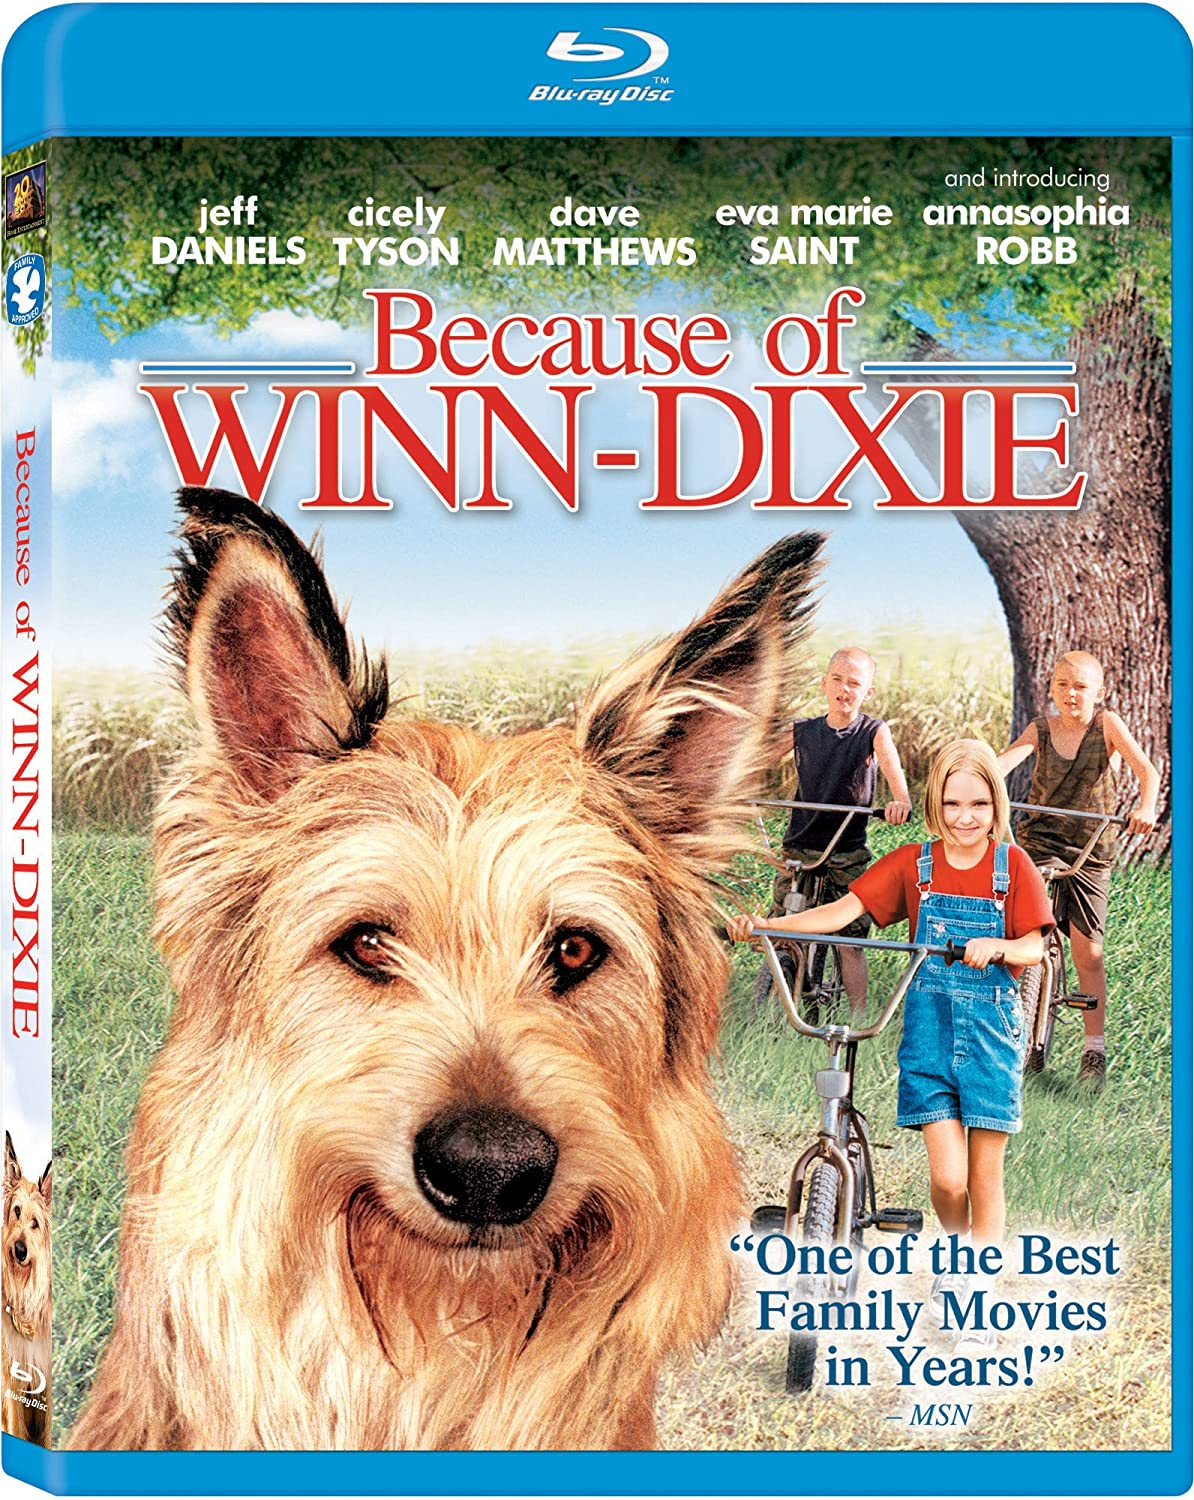 Review of winn dixie free appliances - Amazon Com Because Of Winn Dixie Blu Ray Annasophia Robb Jeff Daniels Eva Marie Saint Cicely Tyson Dave Matthews Courtney Jines Nick Price